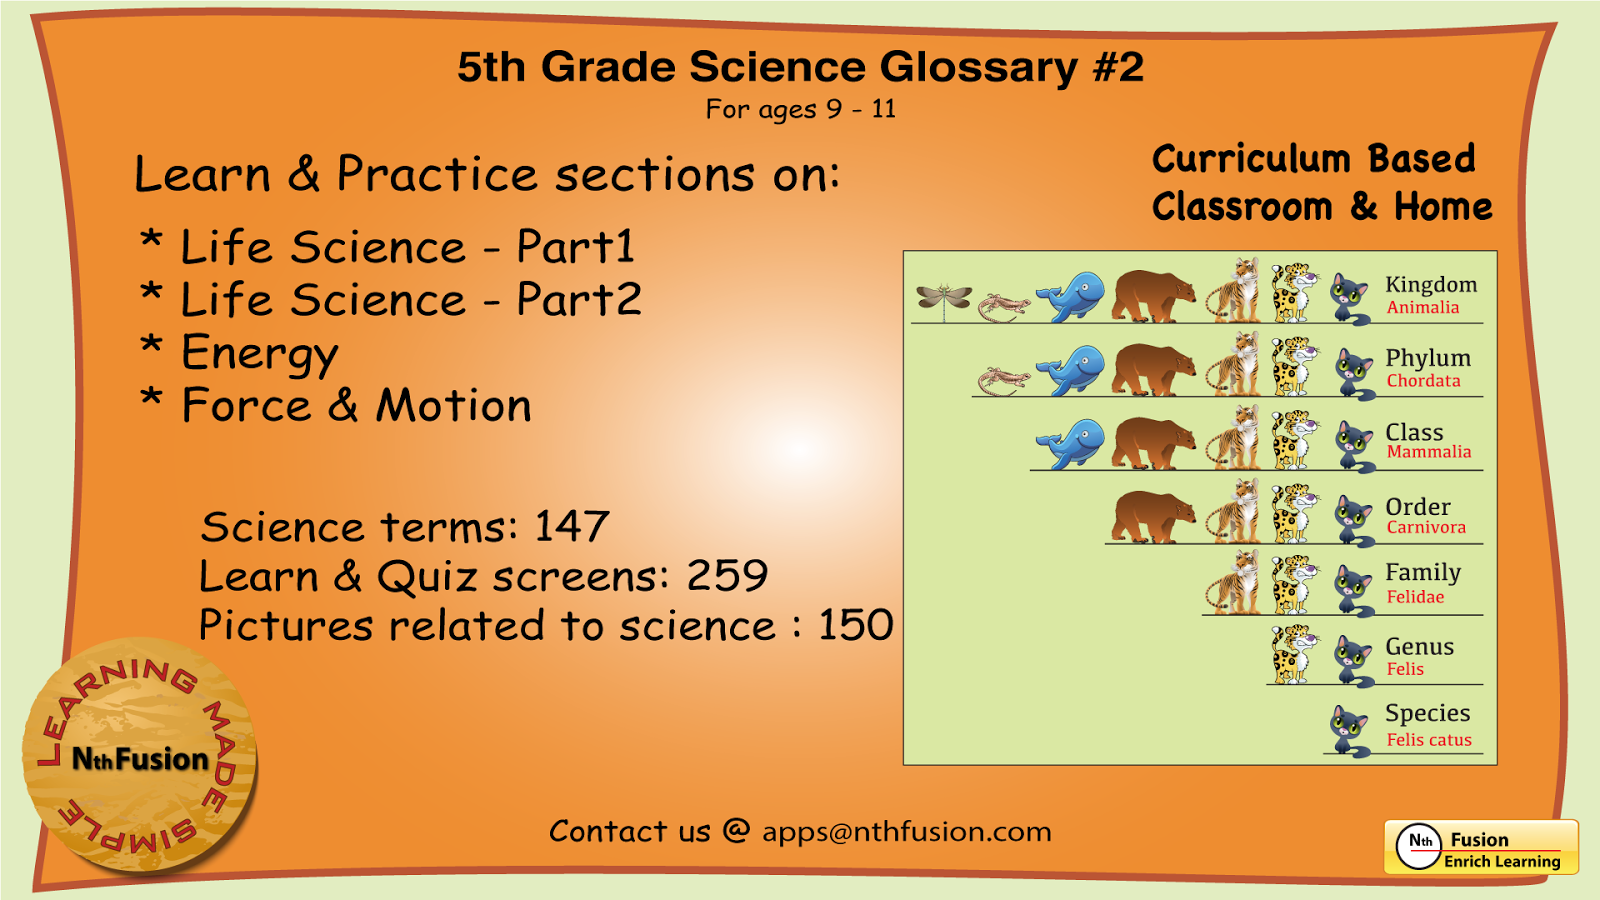 Workbooks vertebrates and invertebrates worksheets 5th grade : 5th Grade Science Glossary # 2 - Android Apps on Google Play